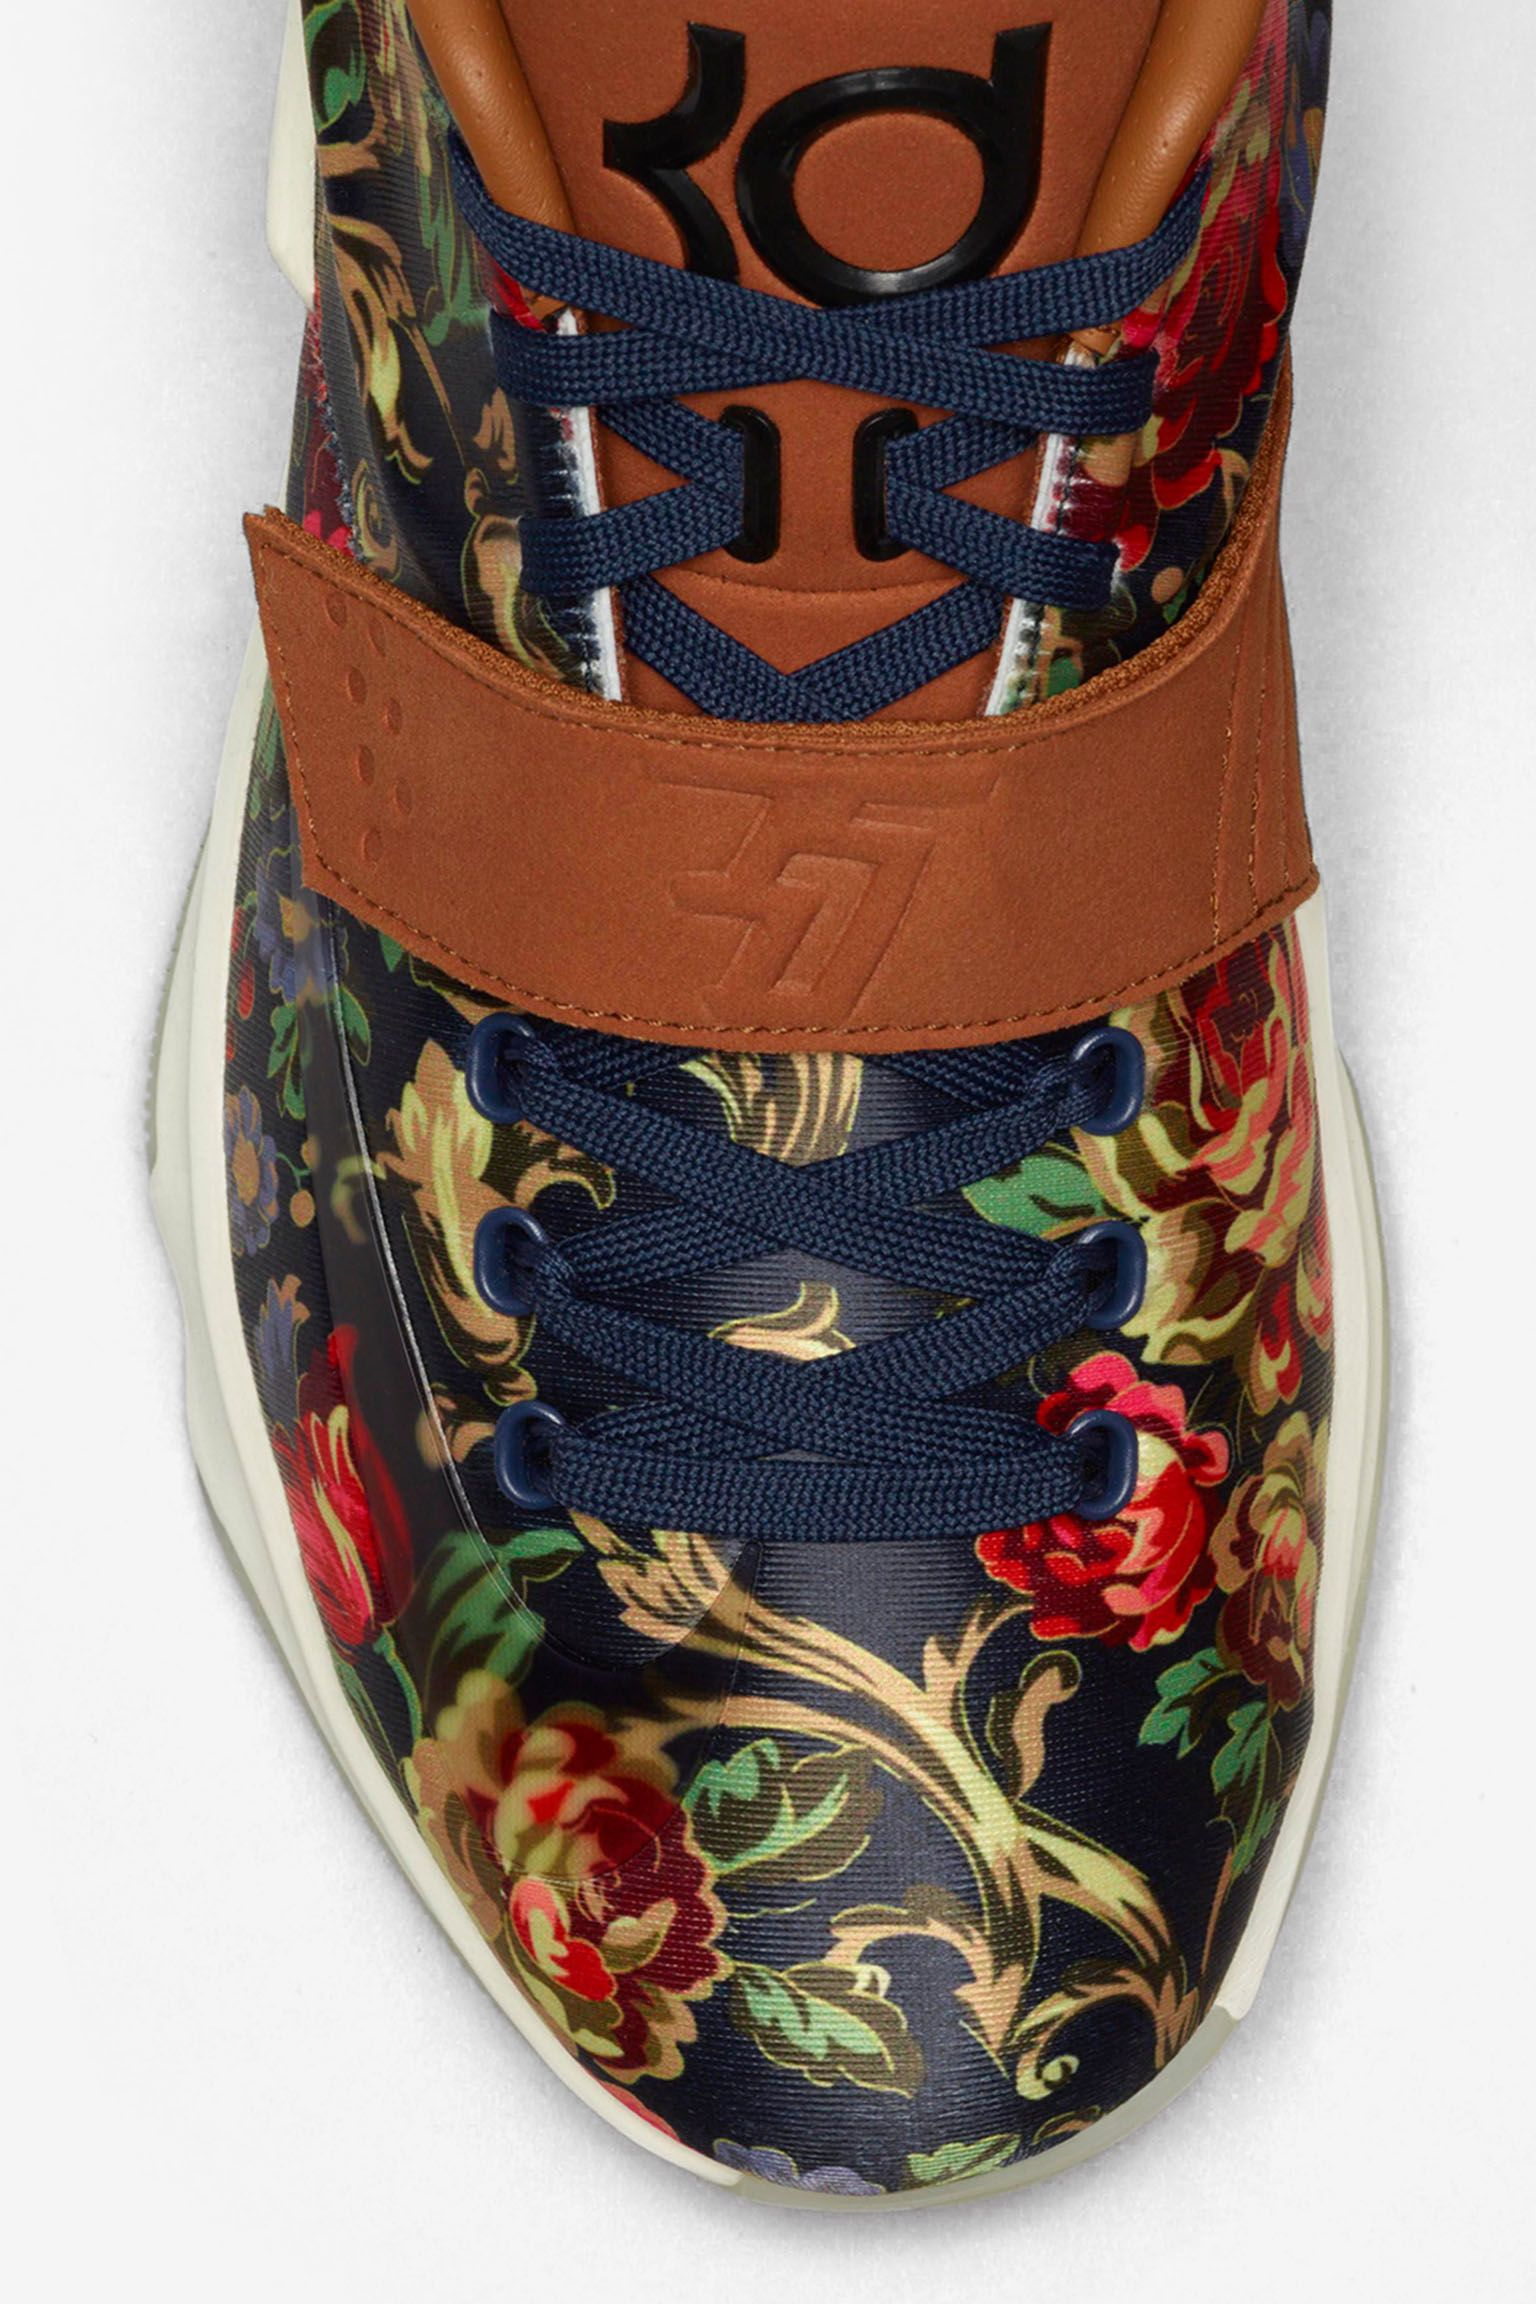 Nike KD 7 EXT 'Floral' Release Date